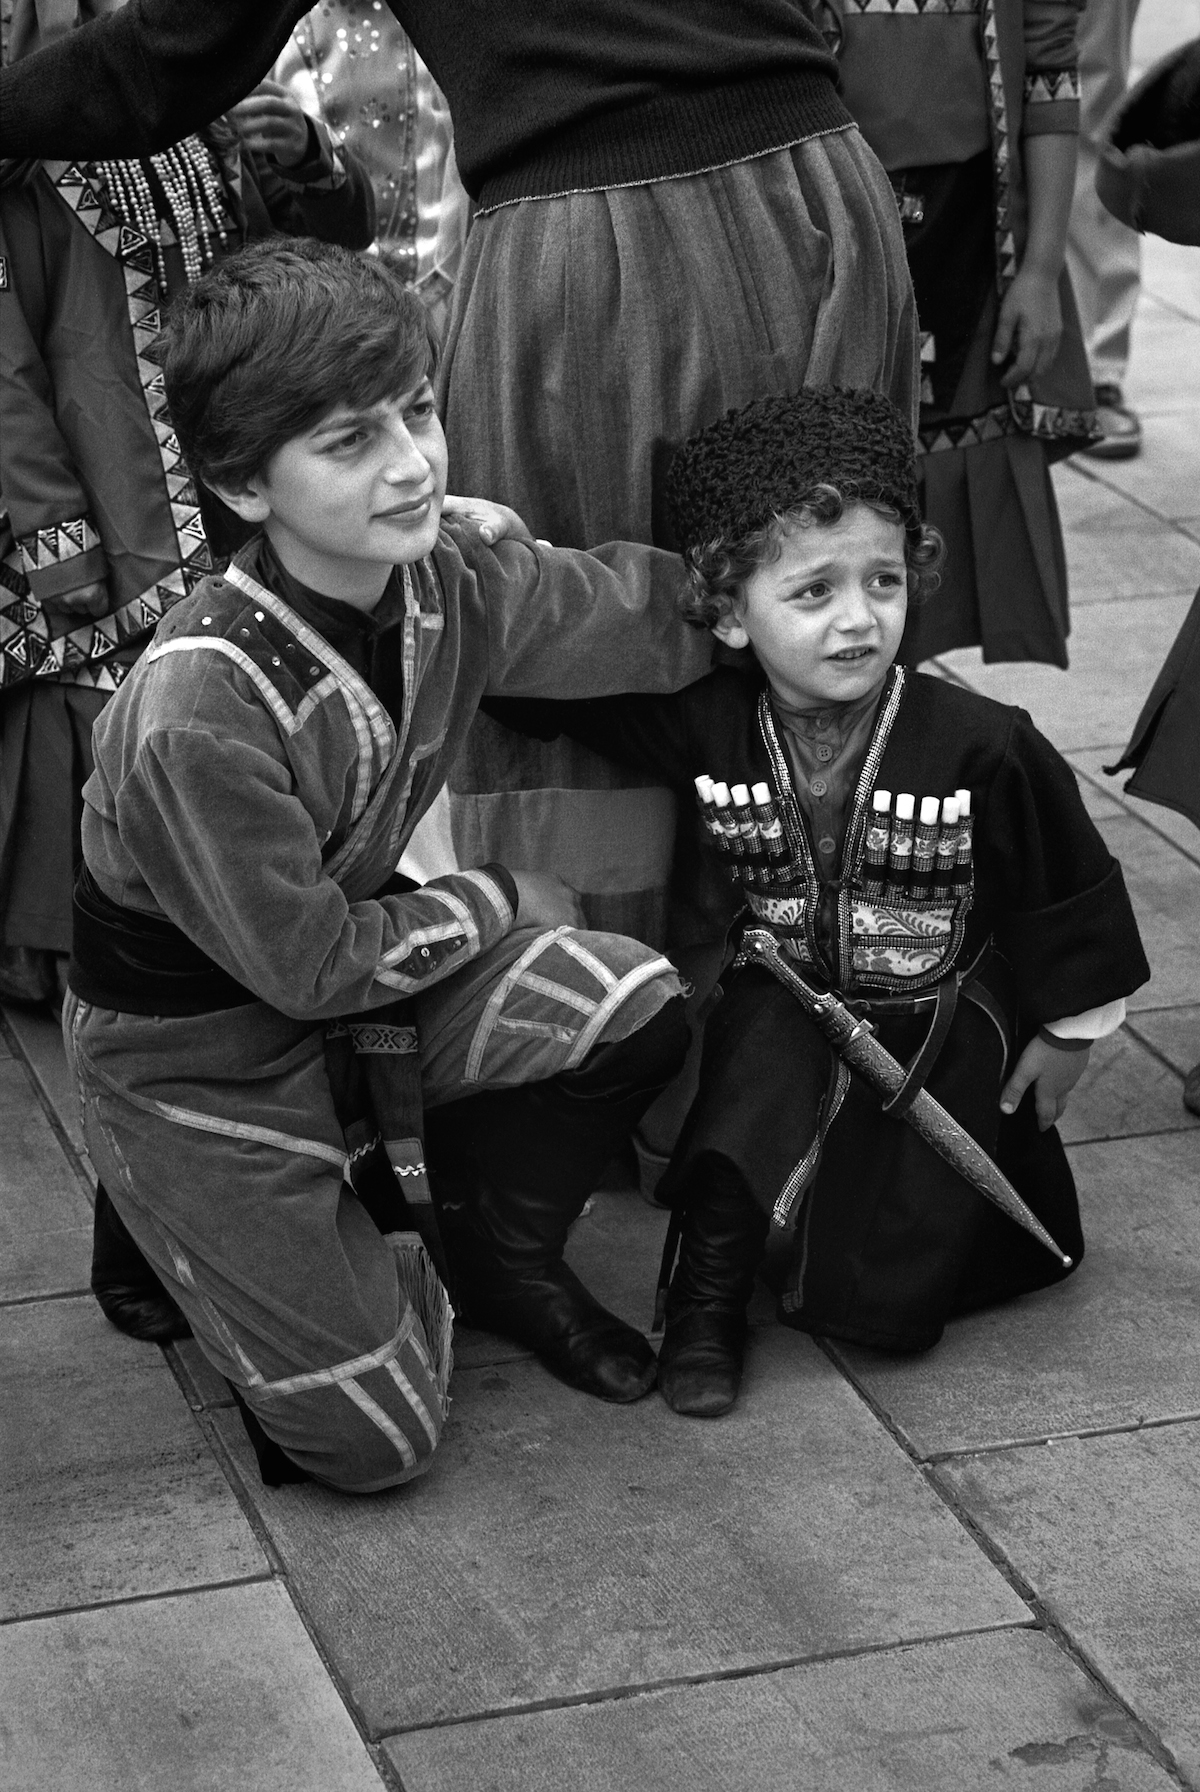 Kids in their national suits. They belong to some southern nationalities of the USSR